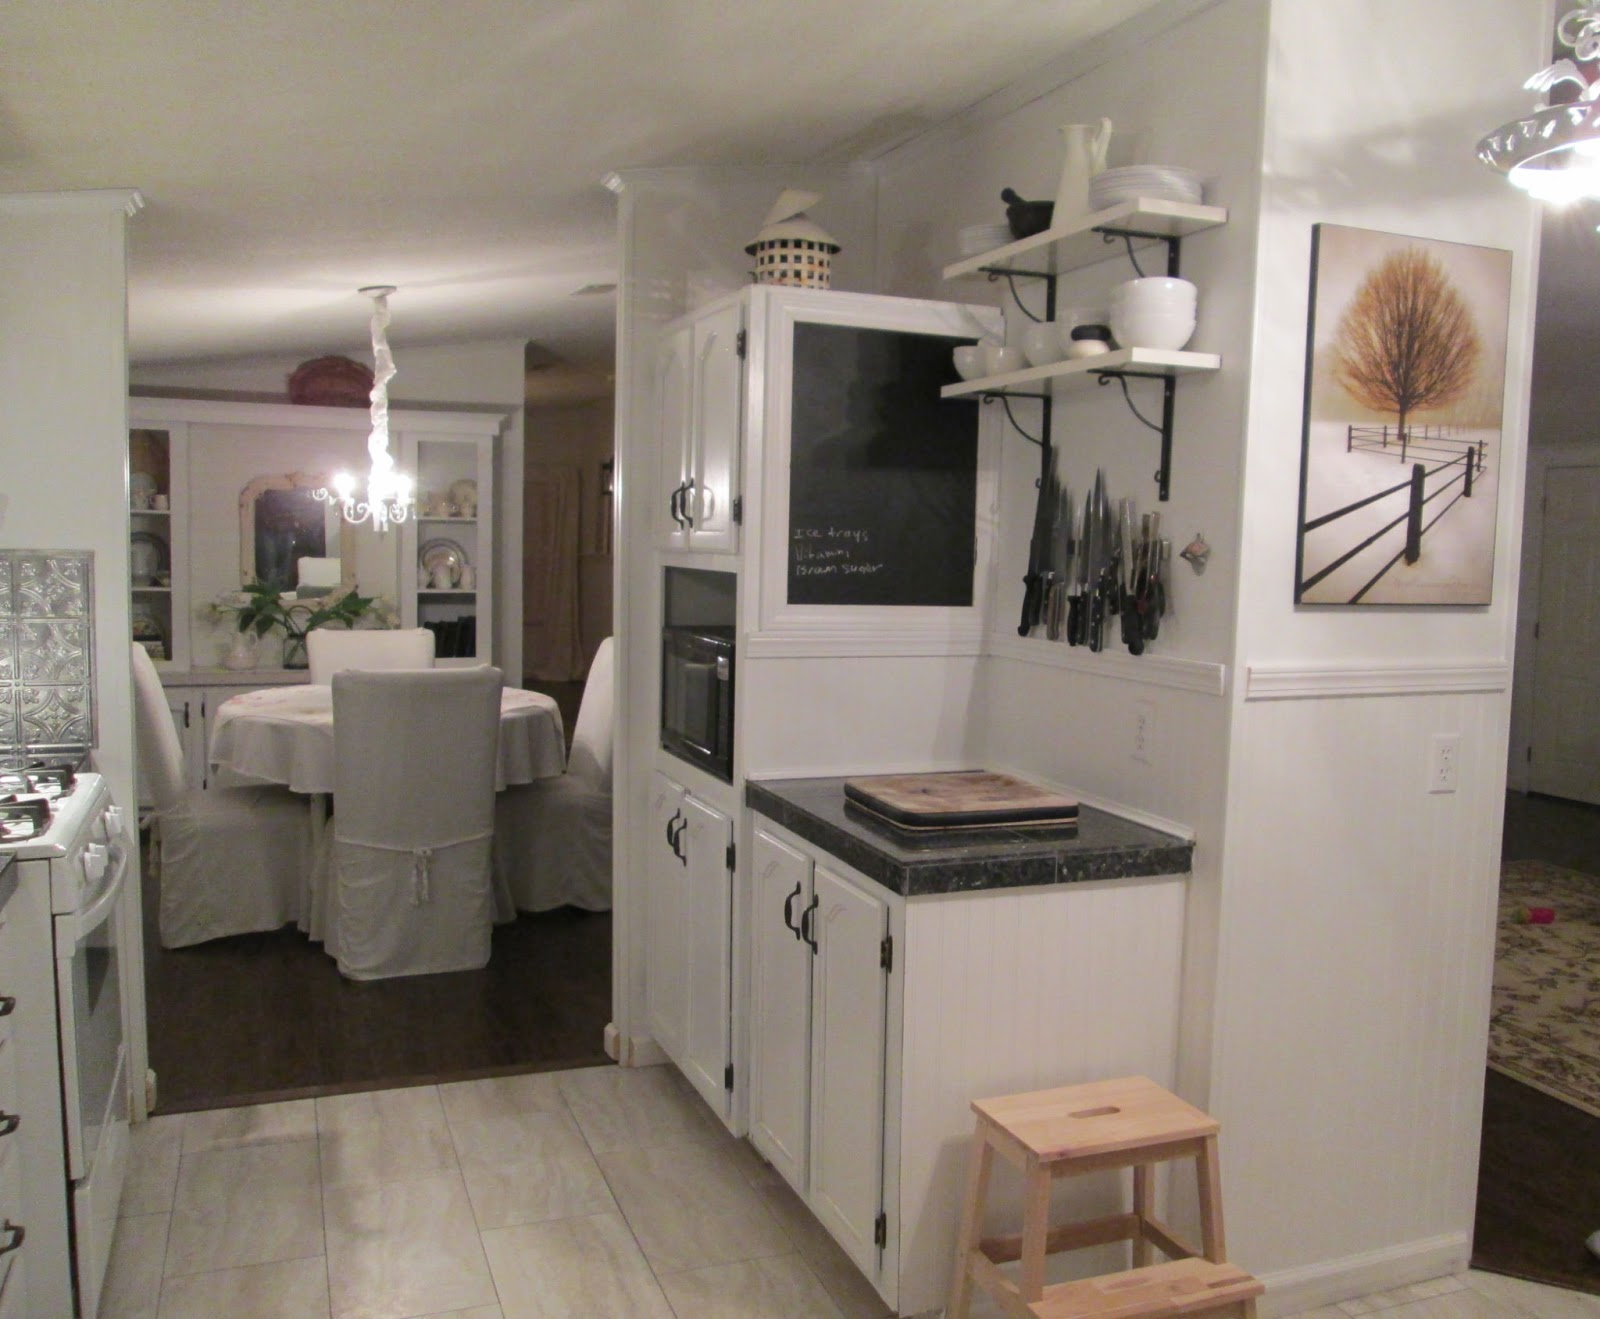 Melodie's Marvelous Manufactured Home Update - MMHL